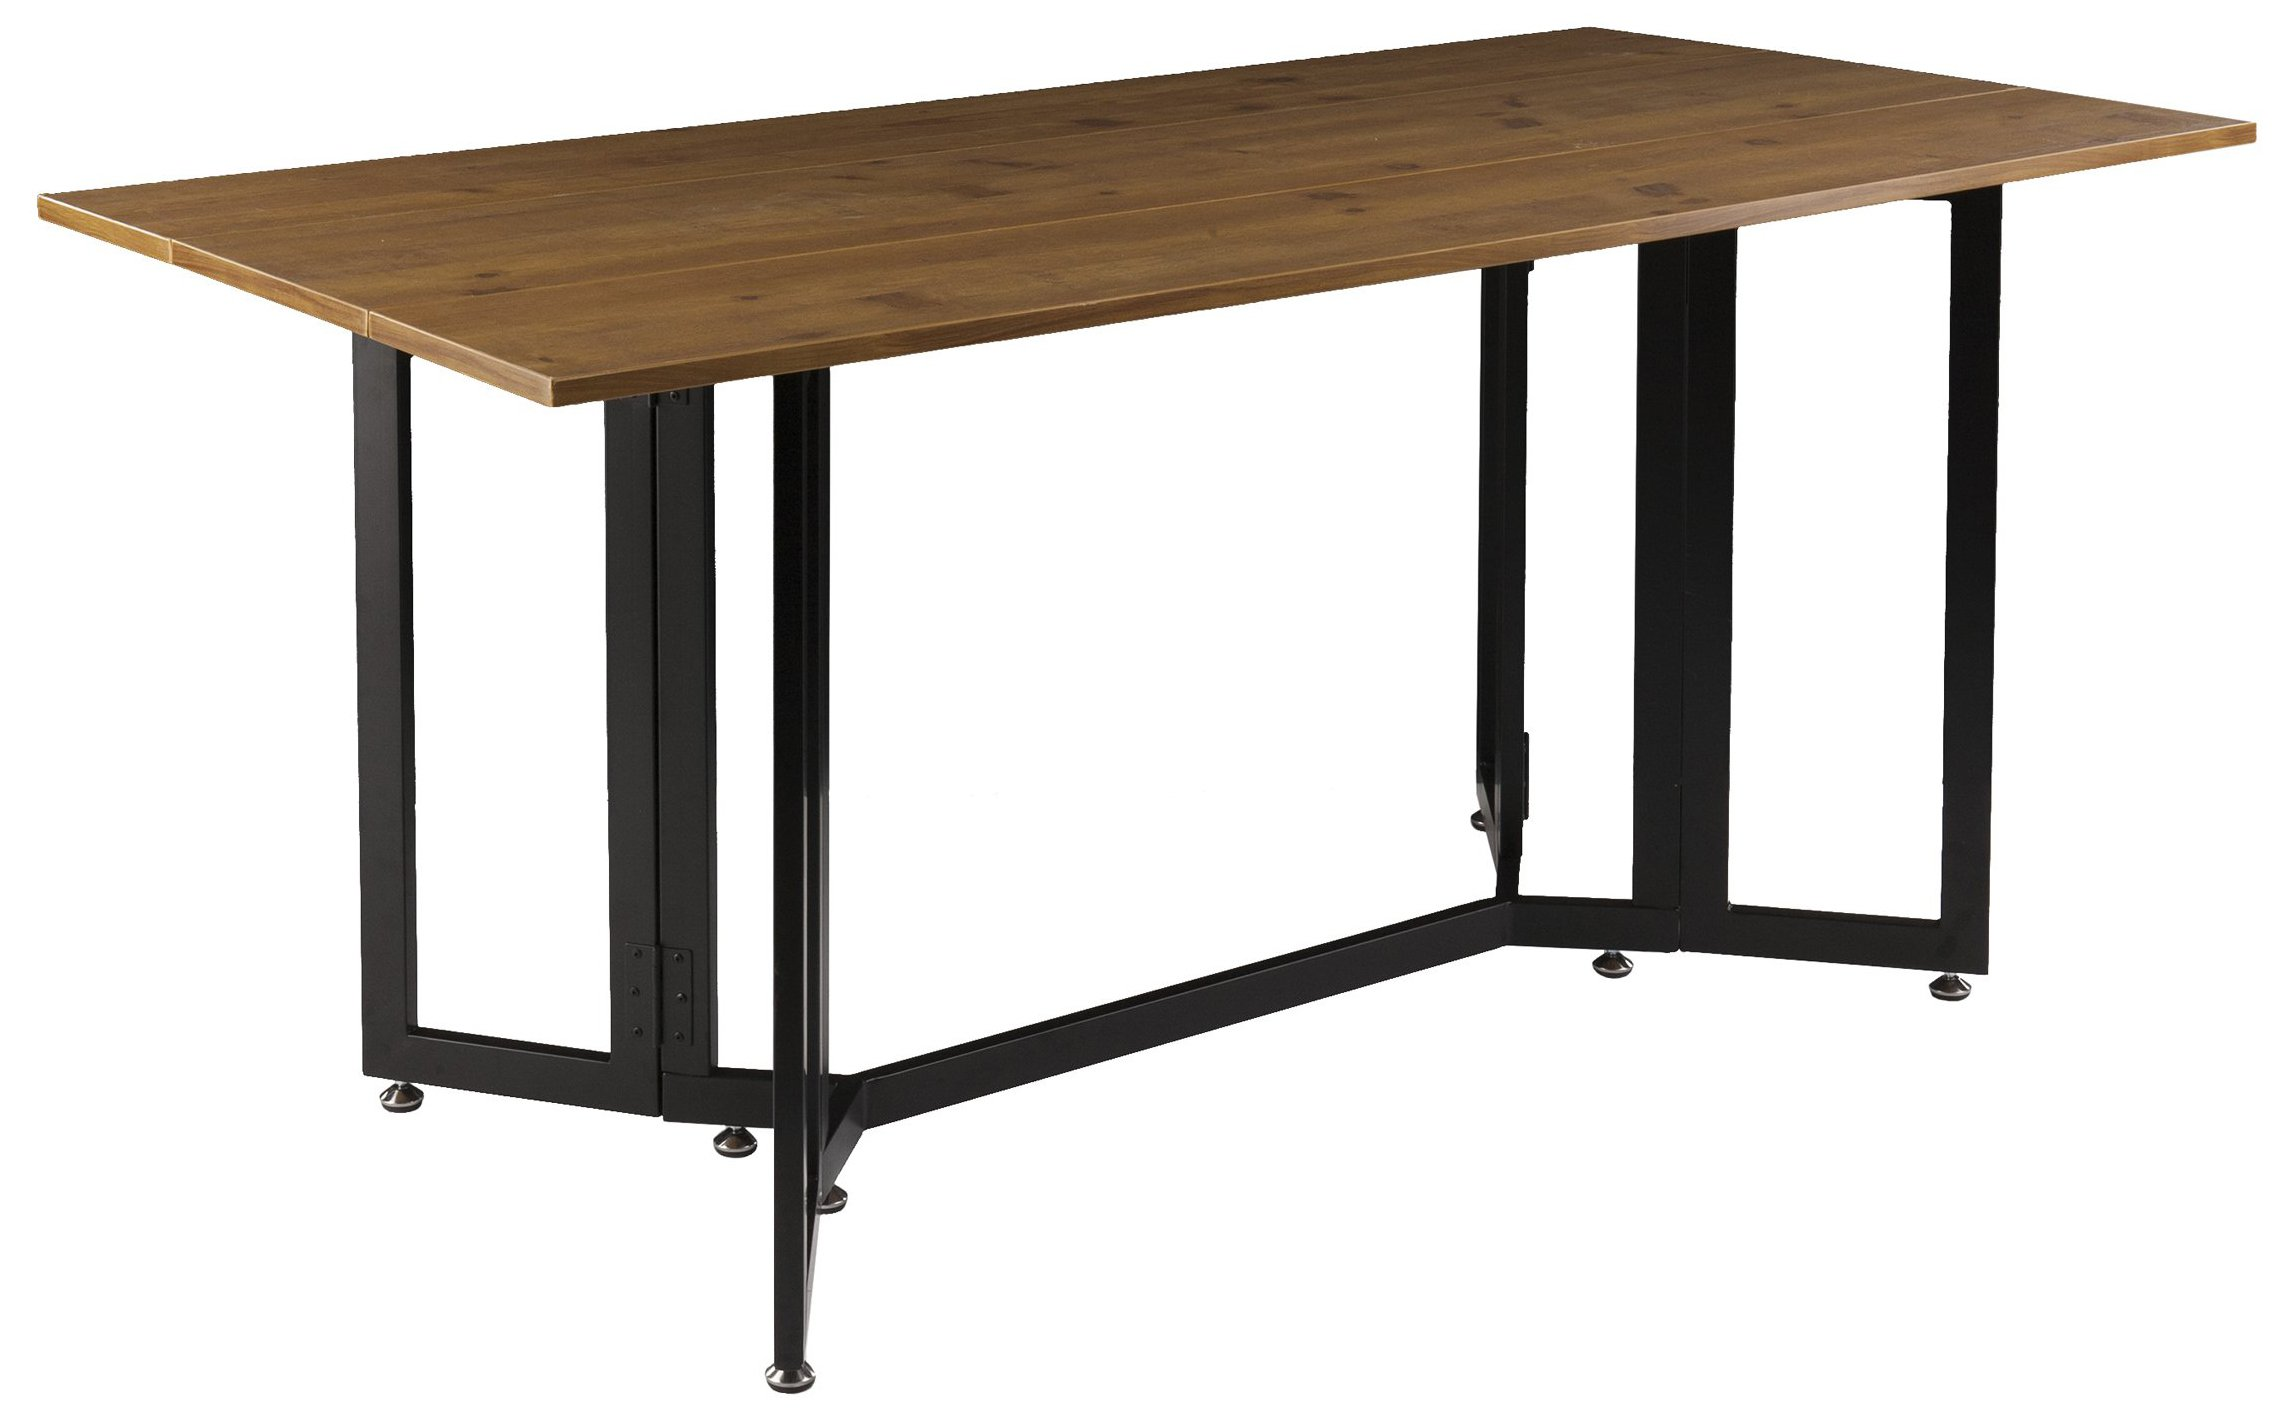 Holly & Martin Driness Drop Leaf Console Dining Table, Weathered Oak Finish with Black Metal Base by Holly & Martin (Image #1)